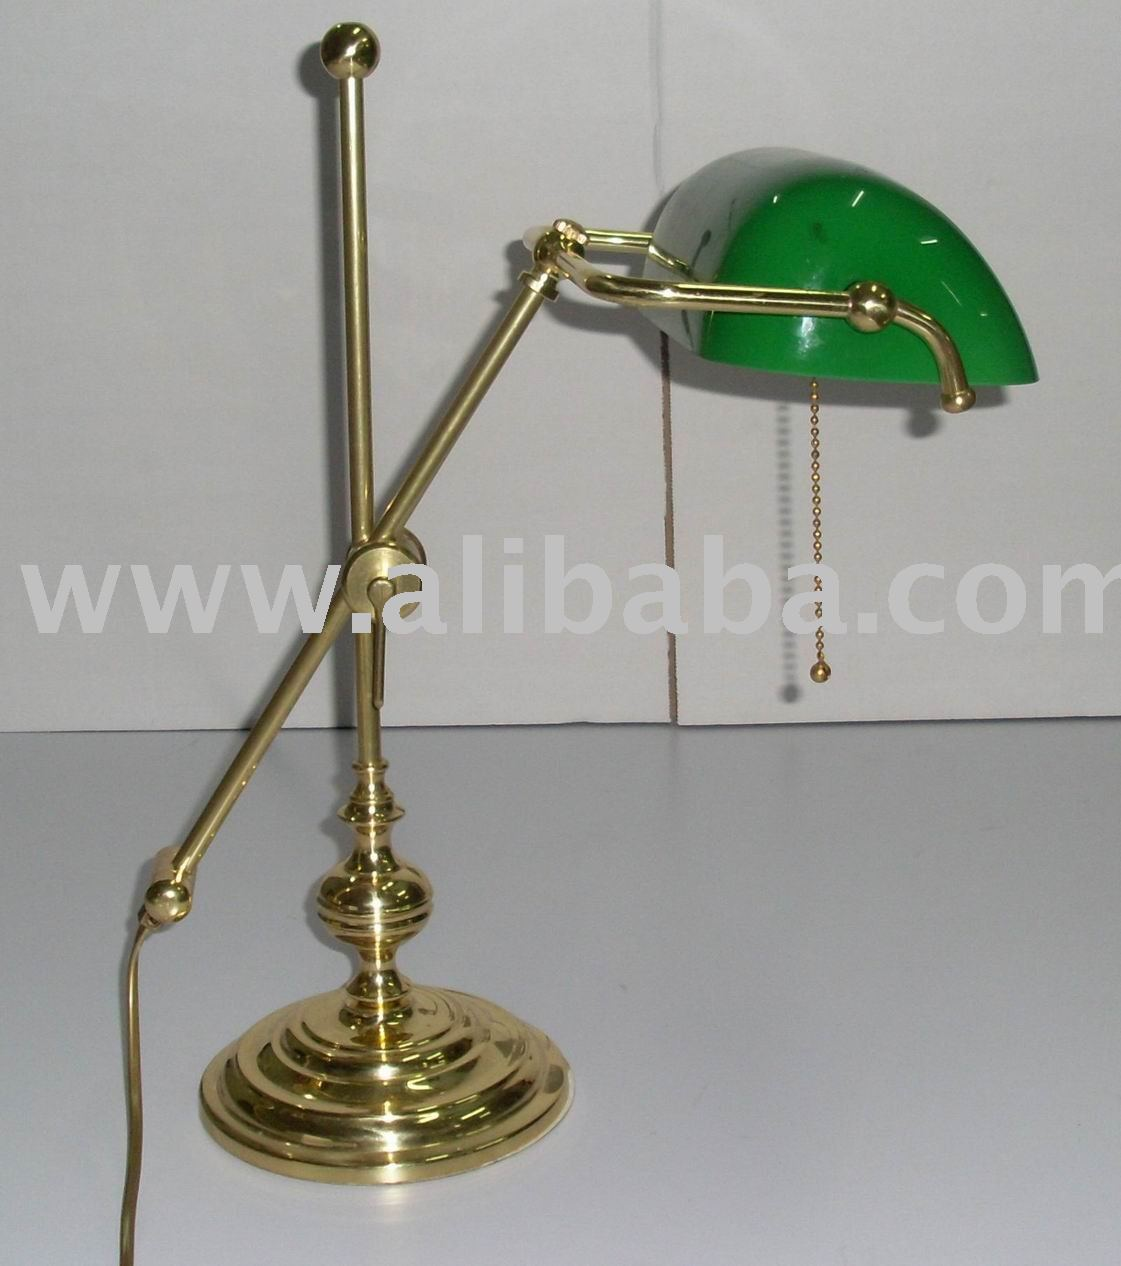 Green Banker Table Lamp, Green Banker Table Lamp Suppliers and  Manufacturers at Alibaba.com - Green Banker Table Lamp, Green Banker Table Lamp Suppliers And